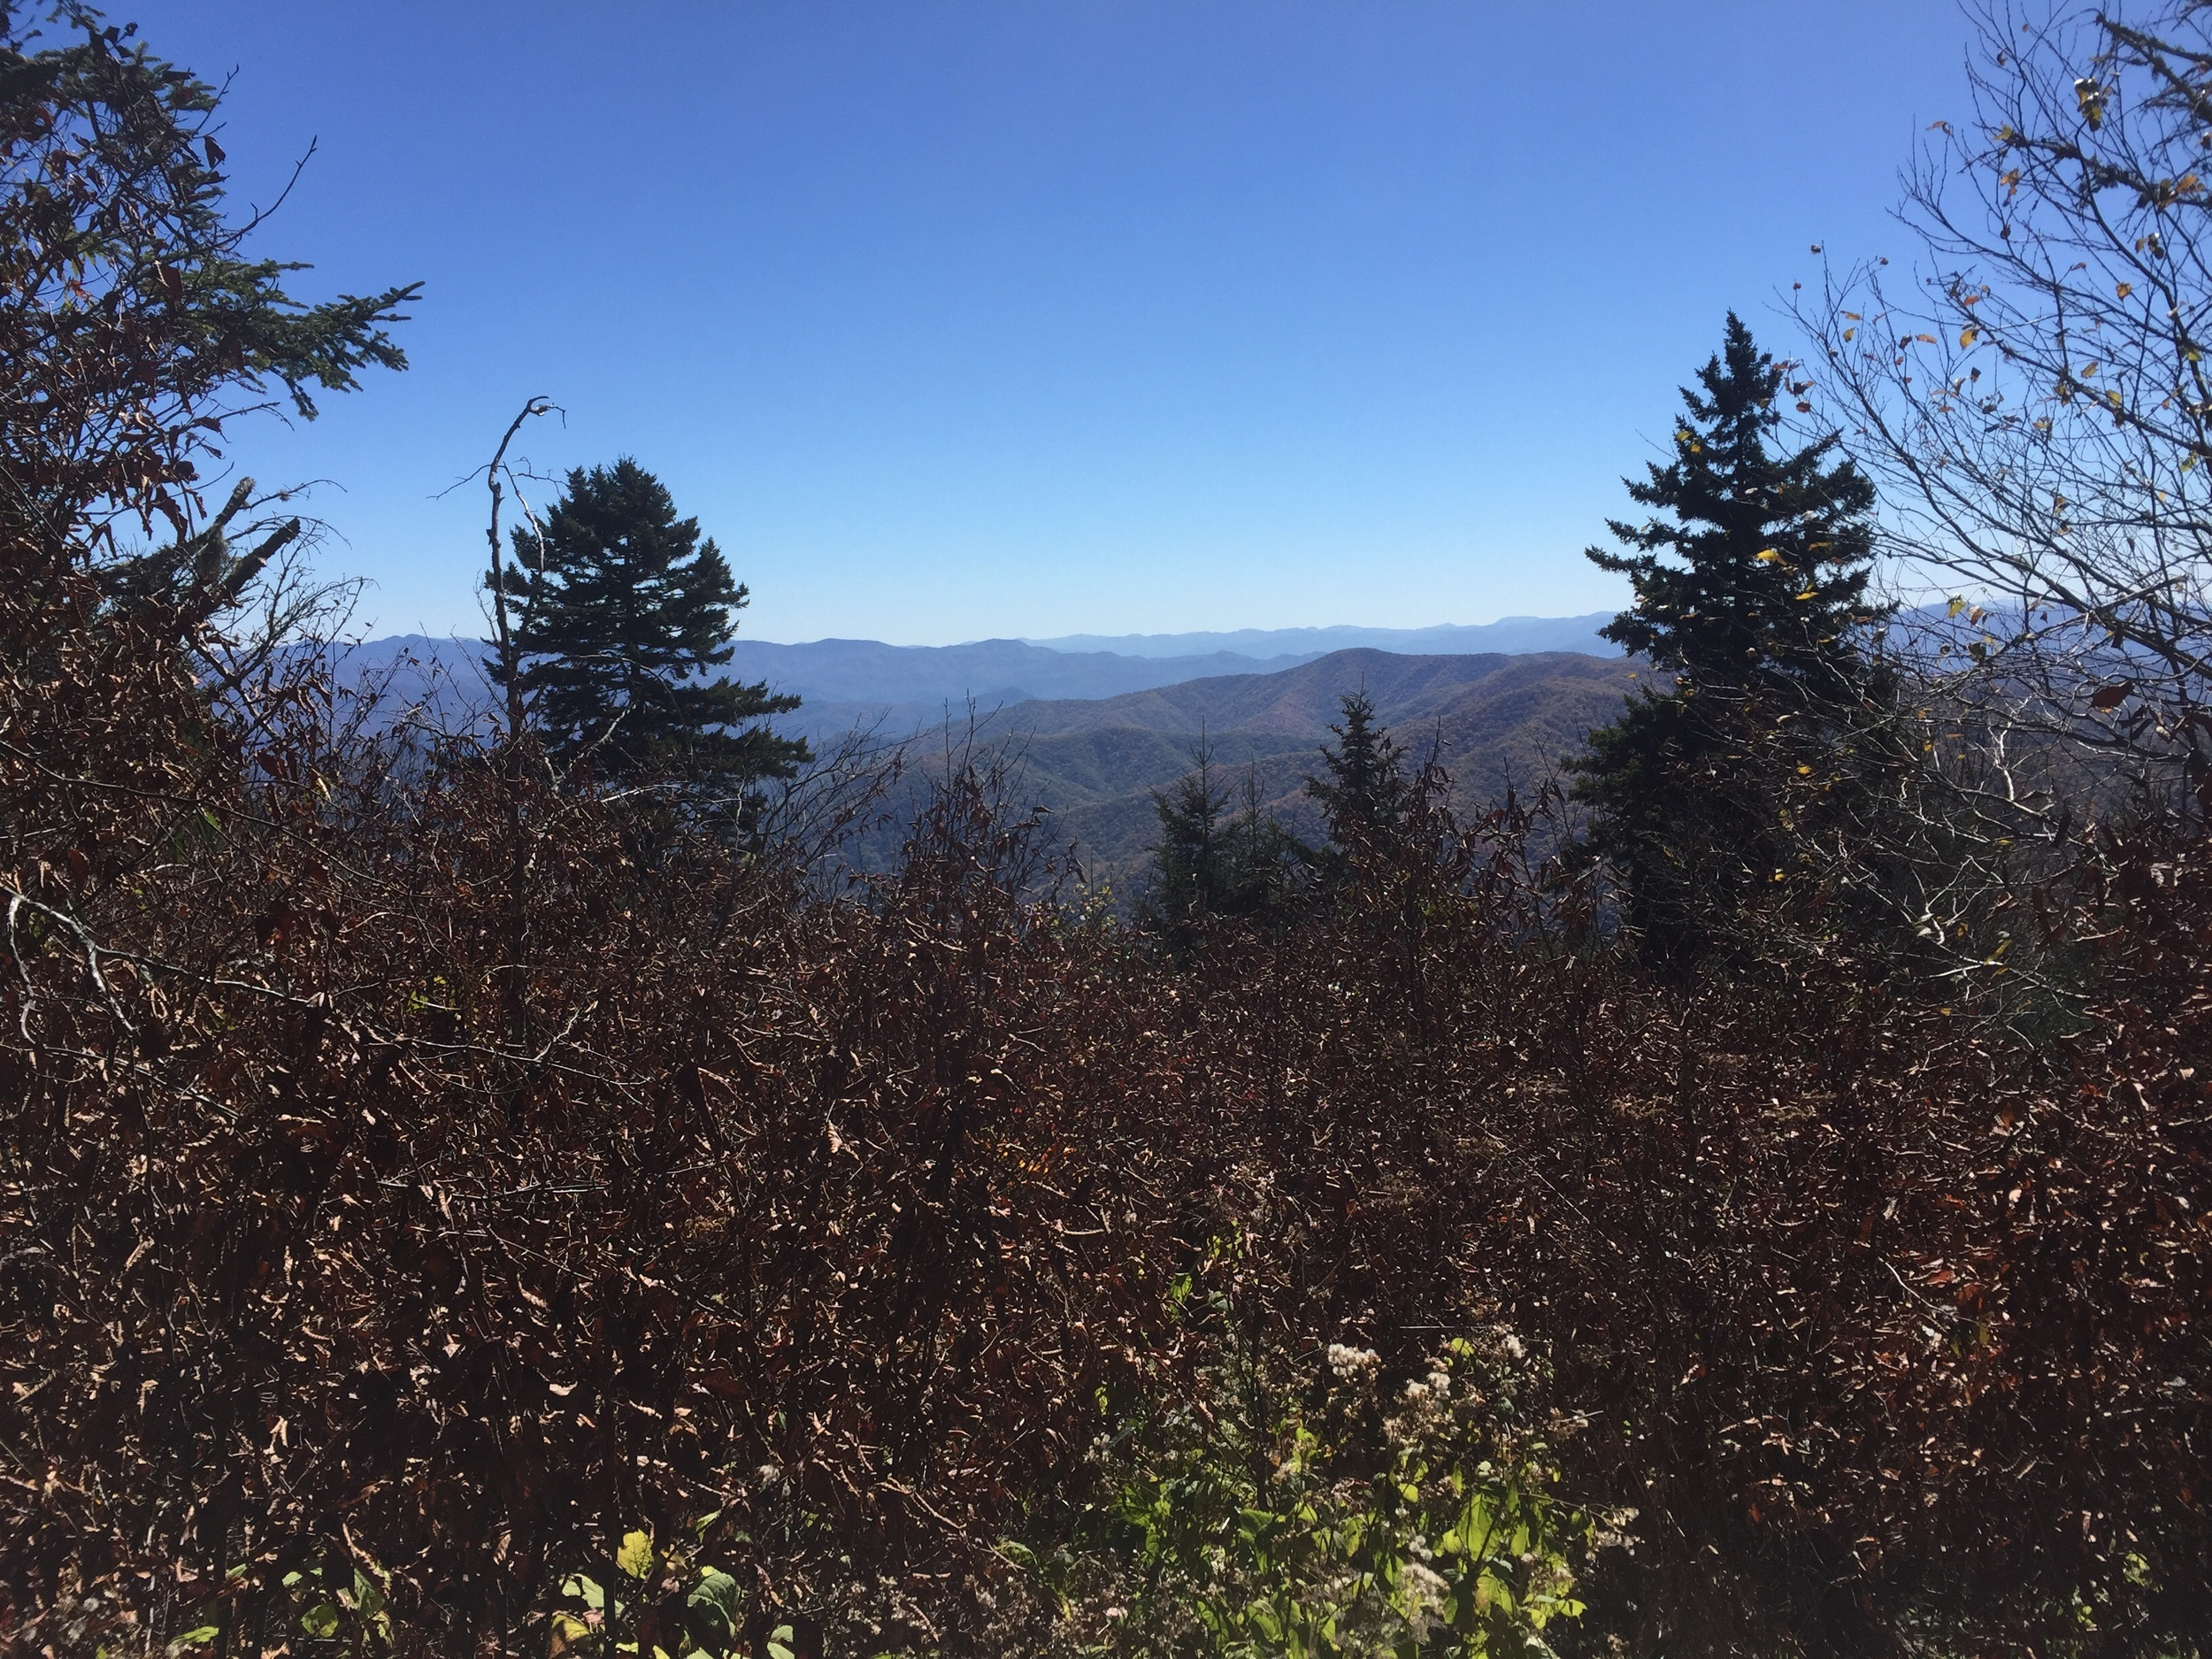 An unnamed view off the Appalachian Trail.